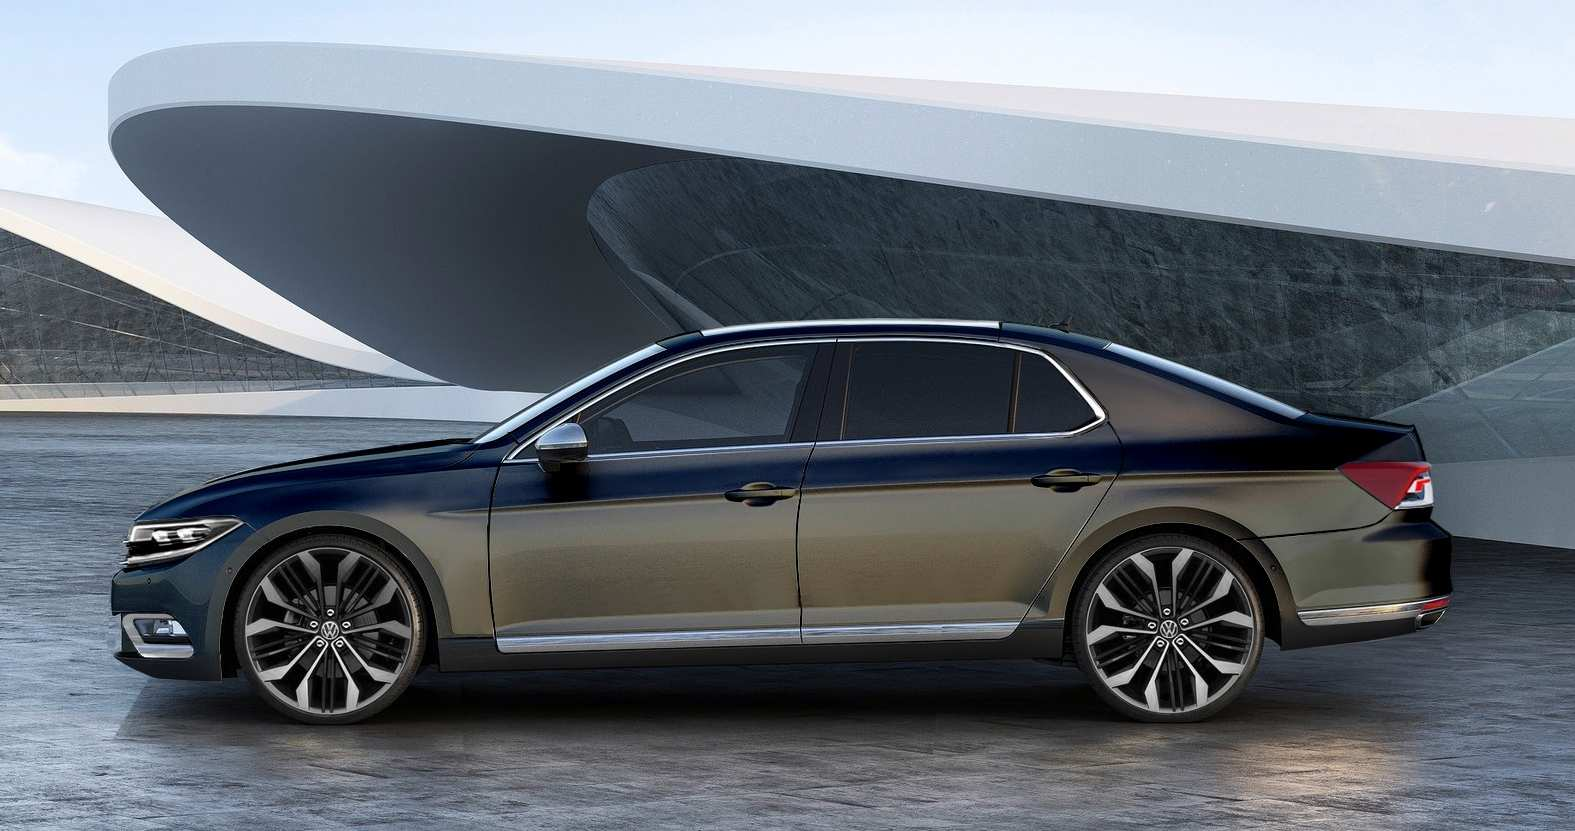 98 Best Review VW Phaeton 2020 Rumors for VW Phaeton 2020